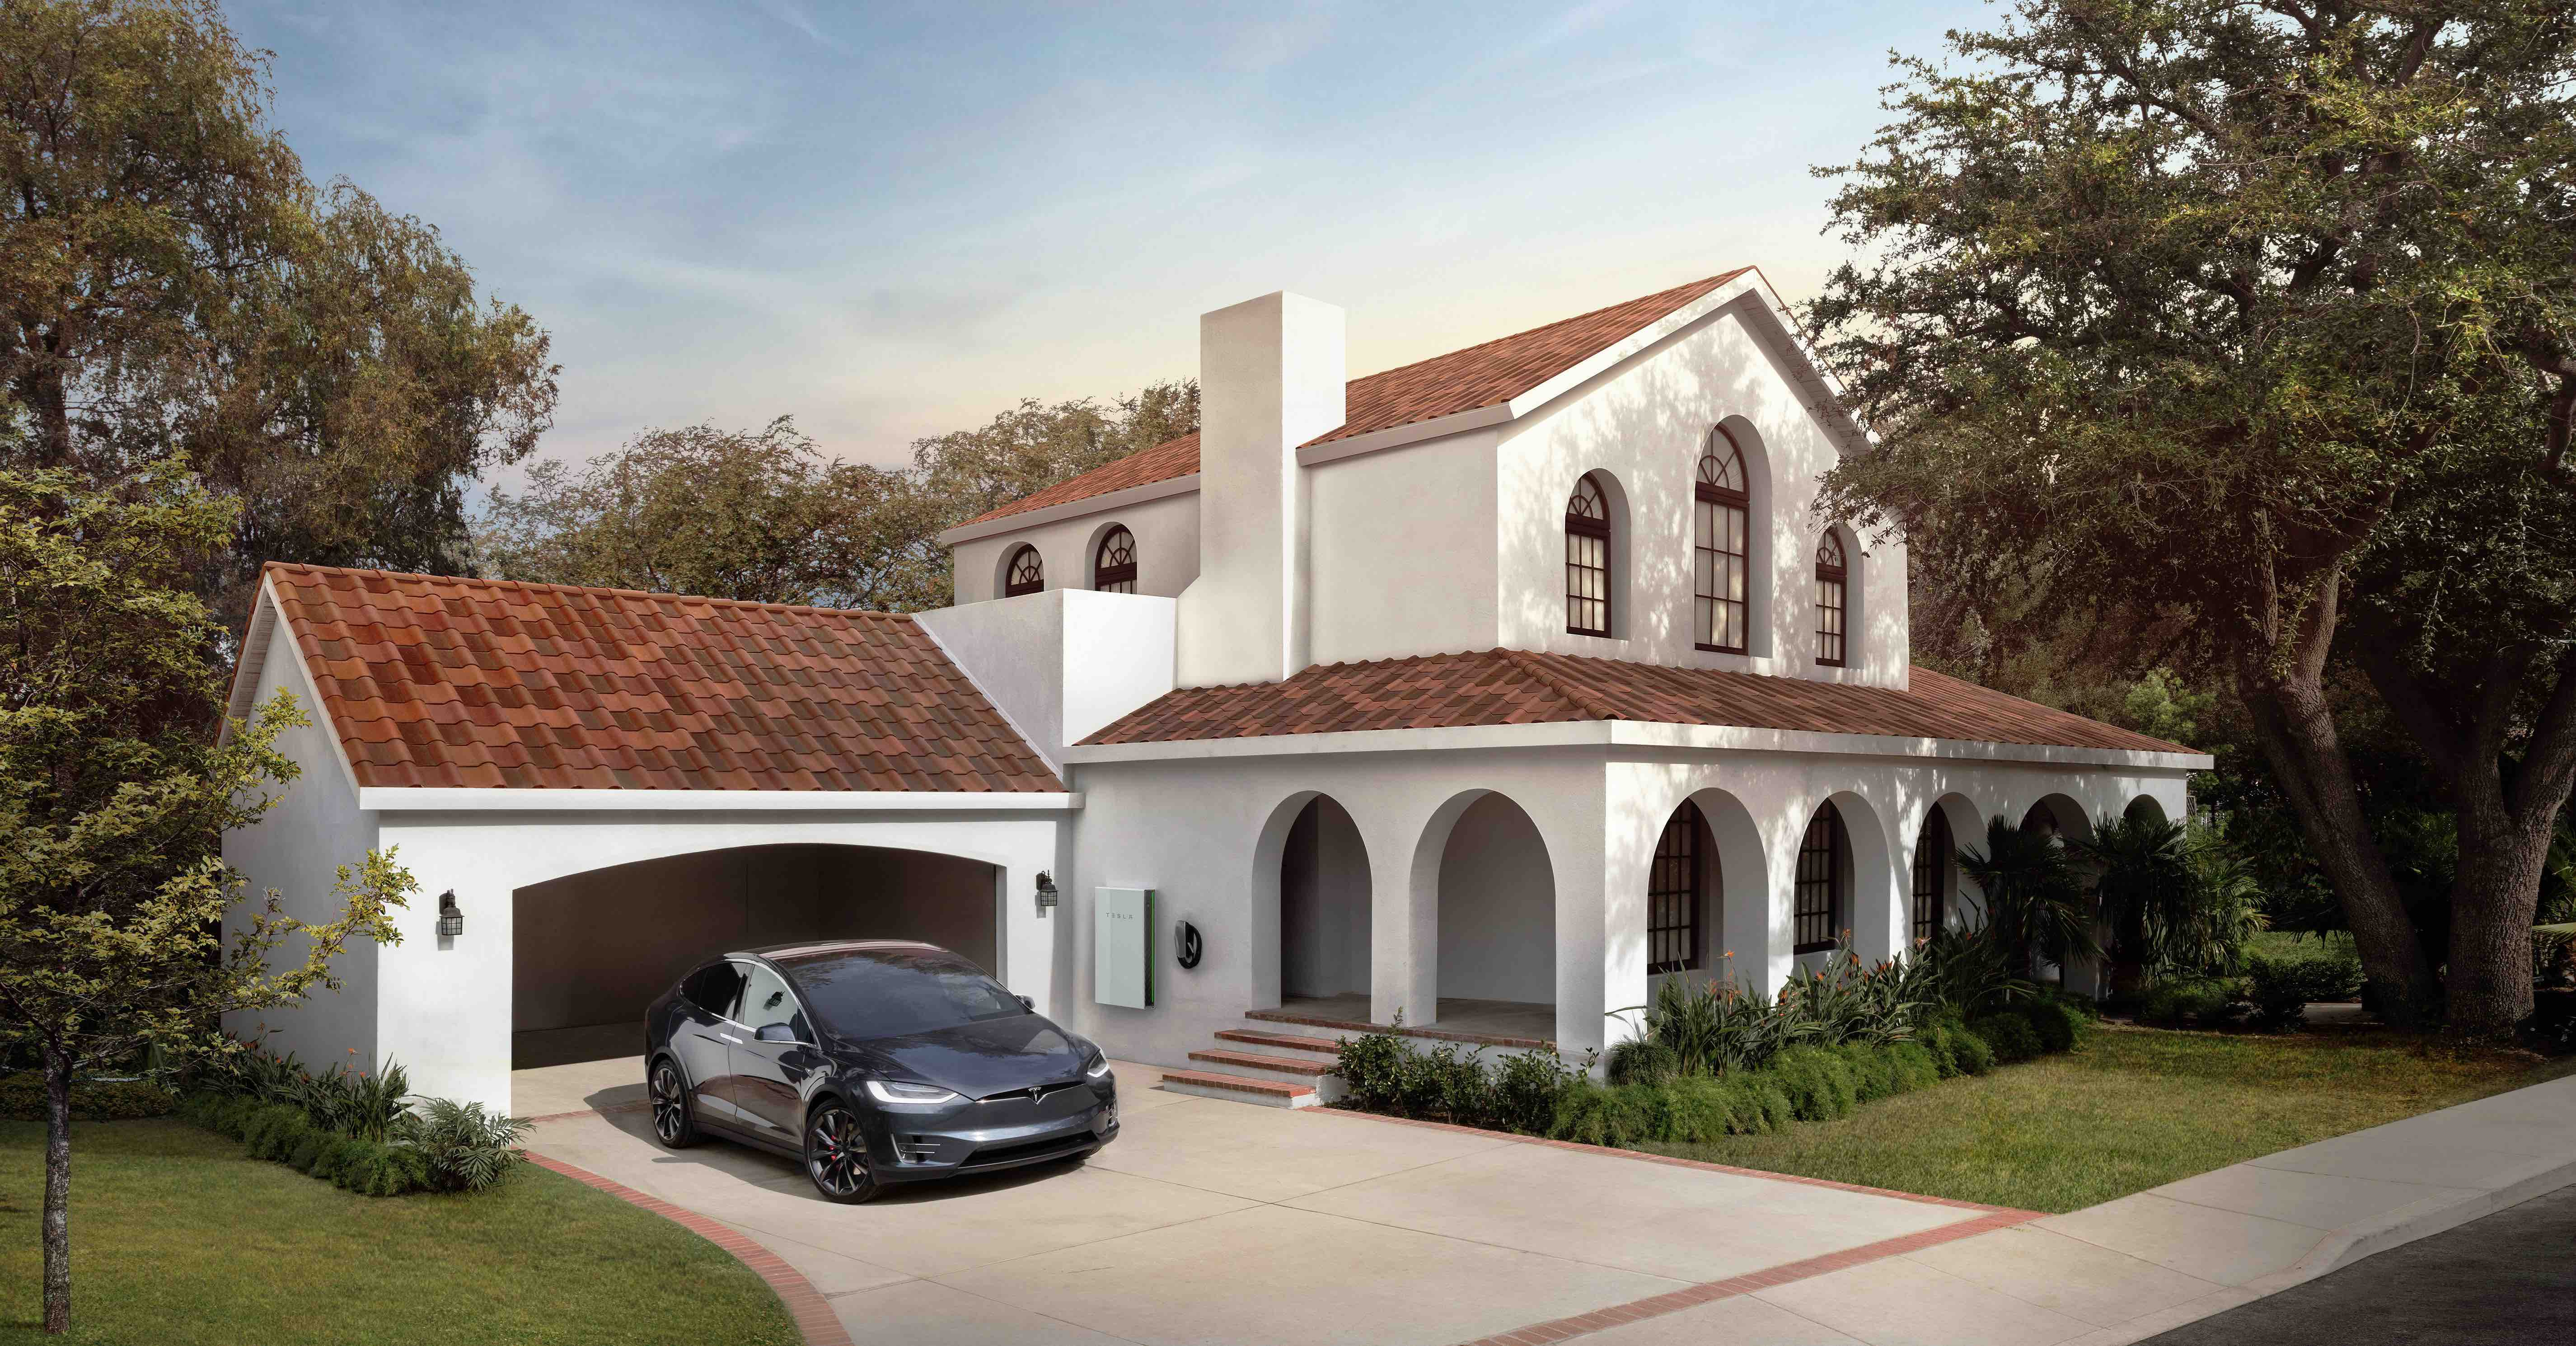 Tesla S New Solar Roof Everything You Need To Know And